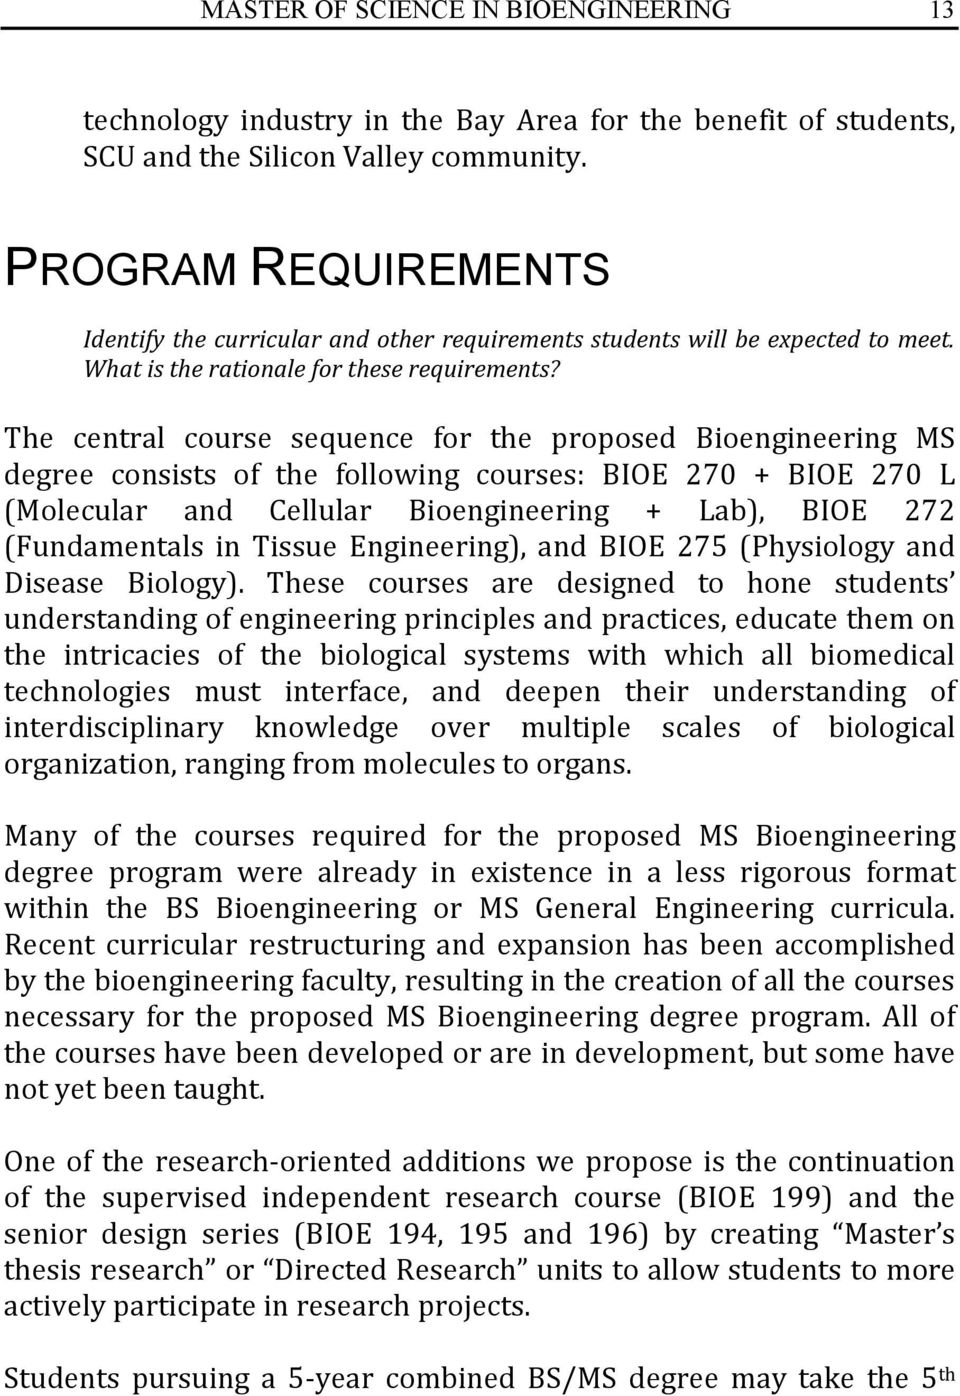 The central course sequence for the proposed Bioengineering MS degree consists of the following courses: BIOE 270 + BIOE 270 L (Molecular and Cellular Bioengineering + Lab), BIOE 272 (Fundamentals in